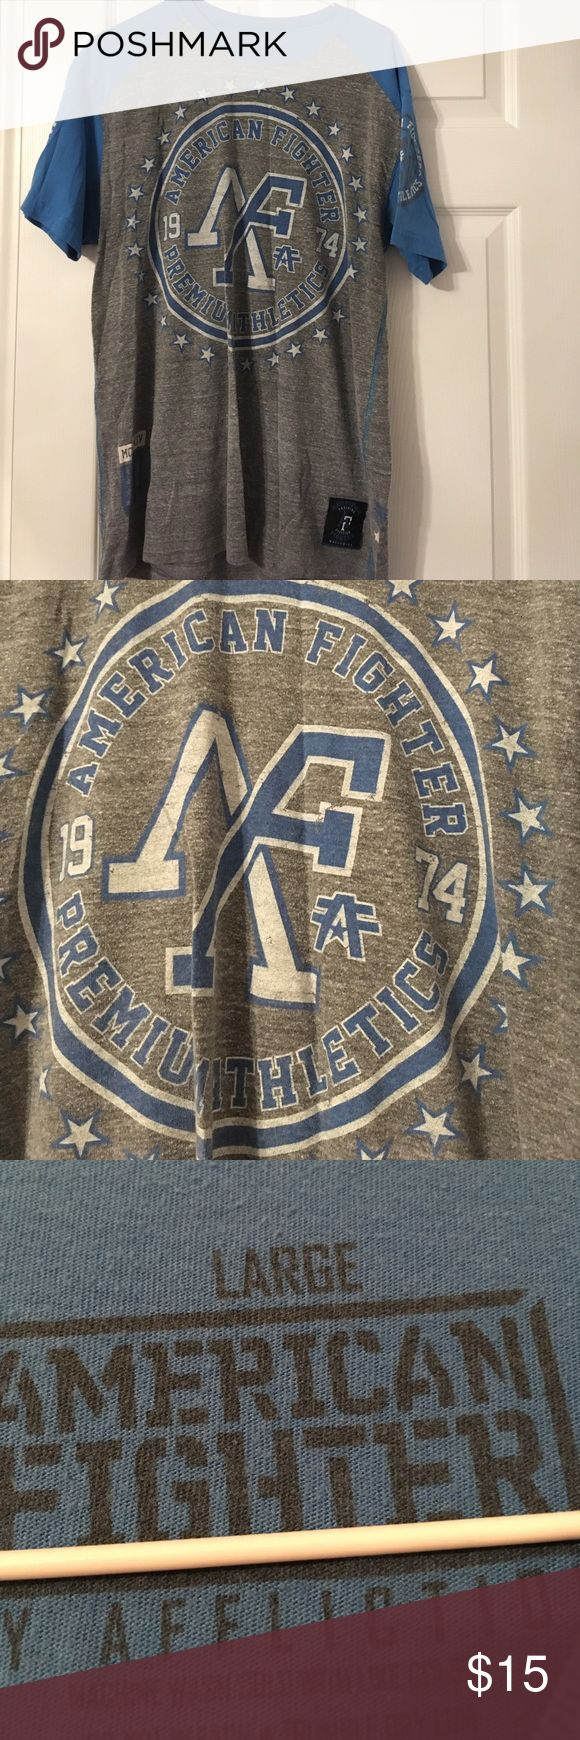 Size large American fighter tshirt American fighter size large tshirt in great condition American Fighter Shirts Tees - Short Sleeve